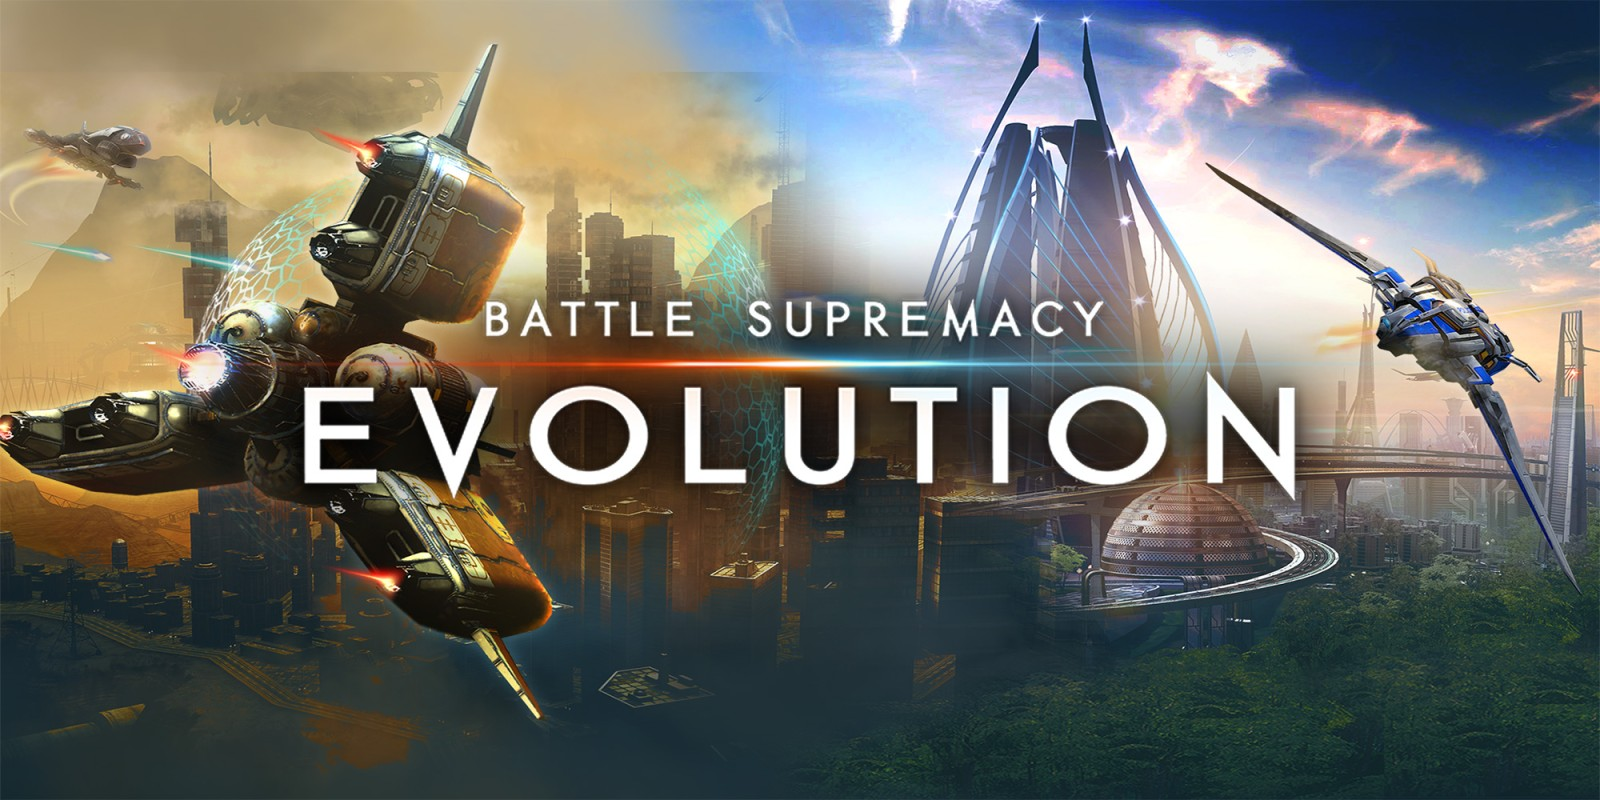 Battle Supremacy - Evolution | Nintendo Switch download